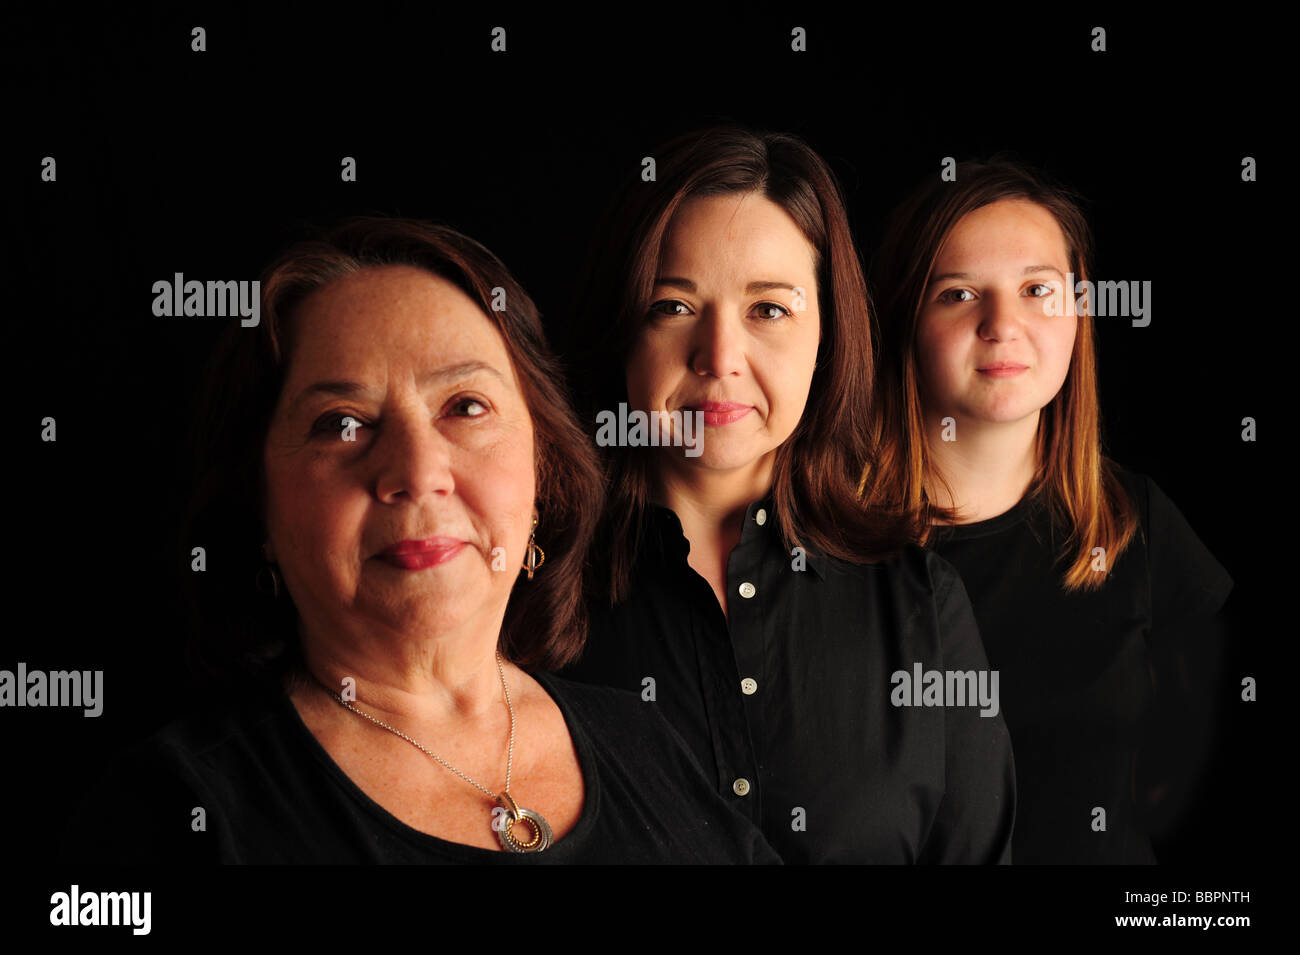 three-3-generations-of-hispanic-women-BBPNTH.jpg